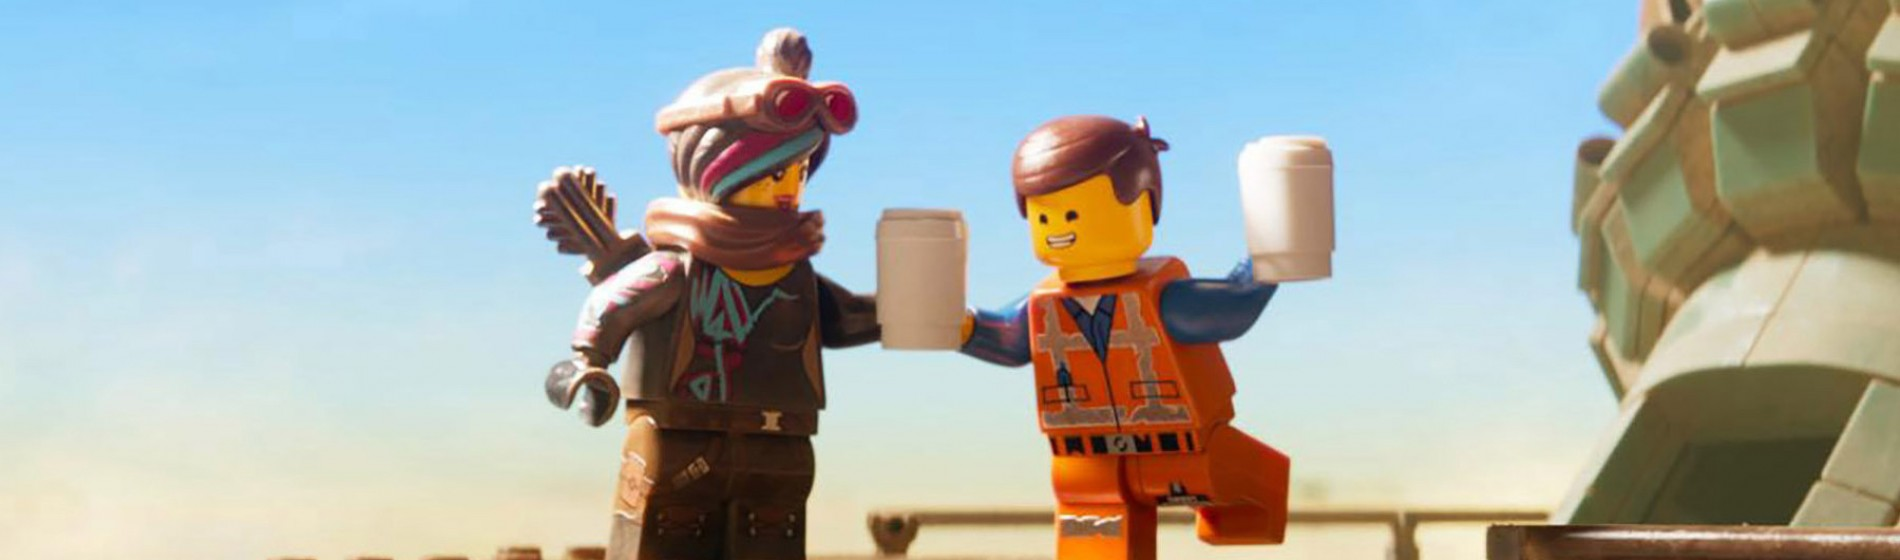 The Lego Movie 2 The Second Part Featured